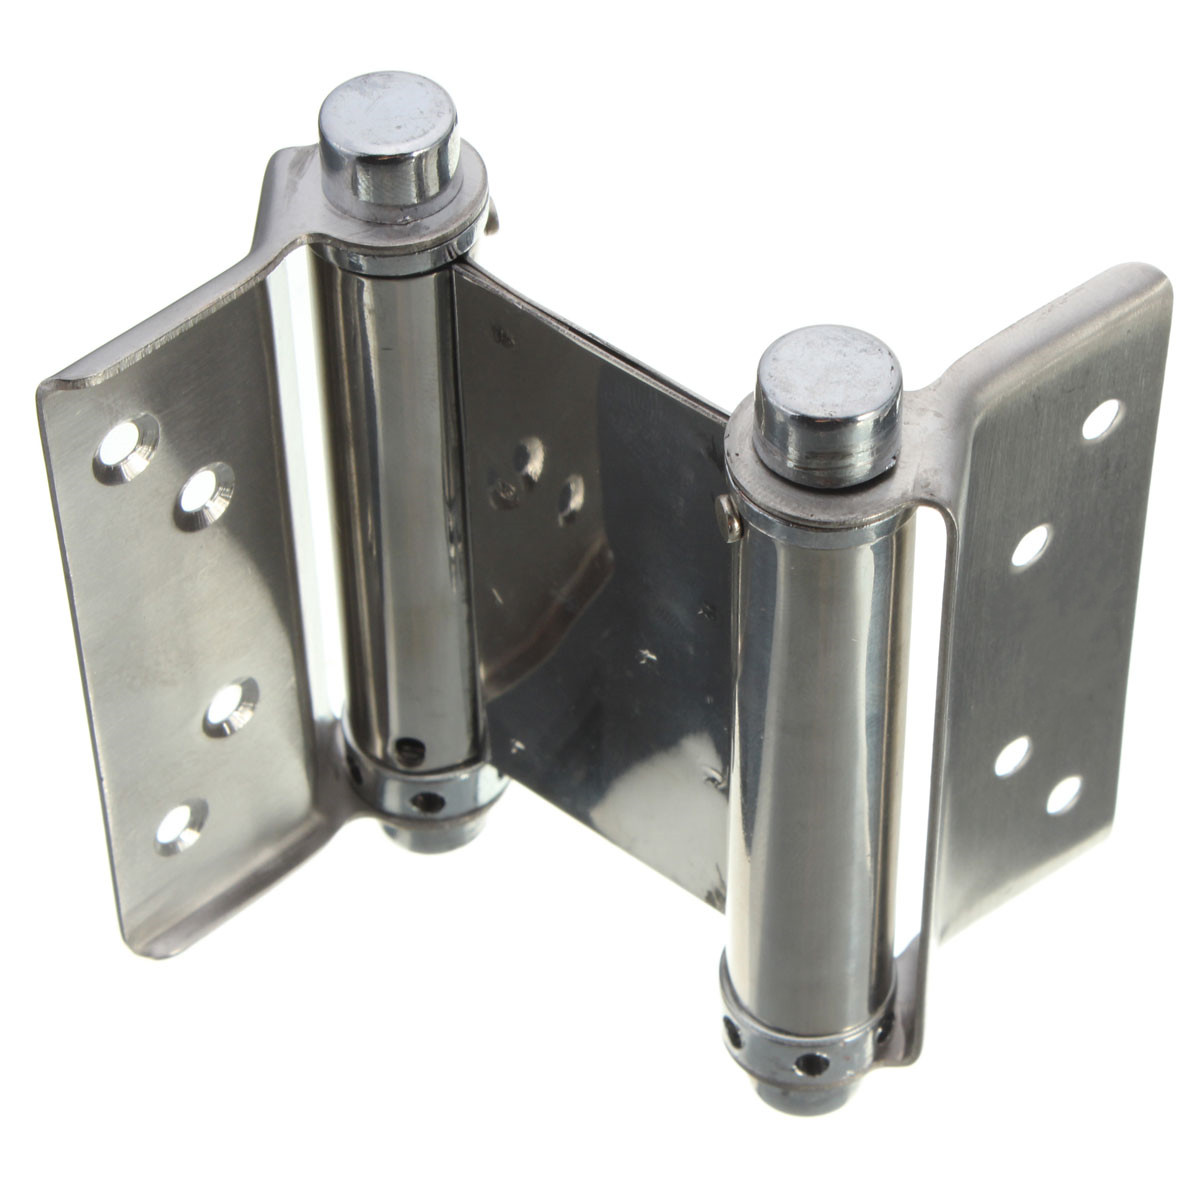 Saloon Door Hinges : Pcs inch double action spring hinge saloon cafe door